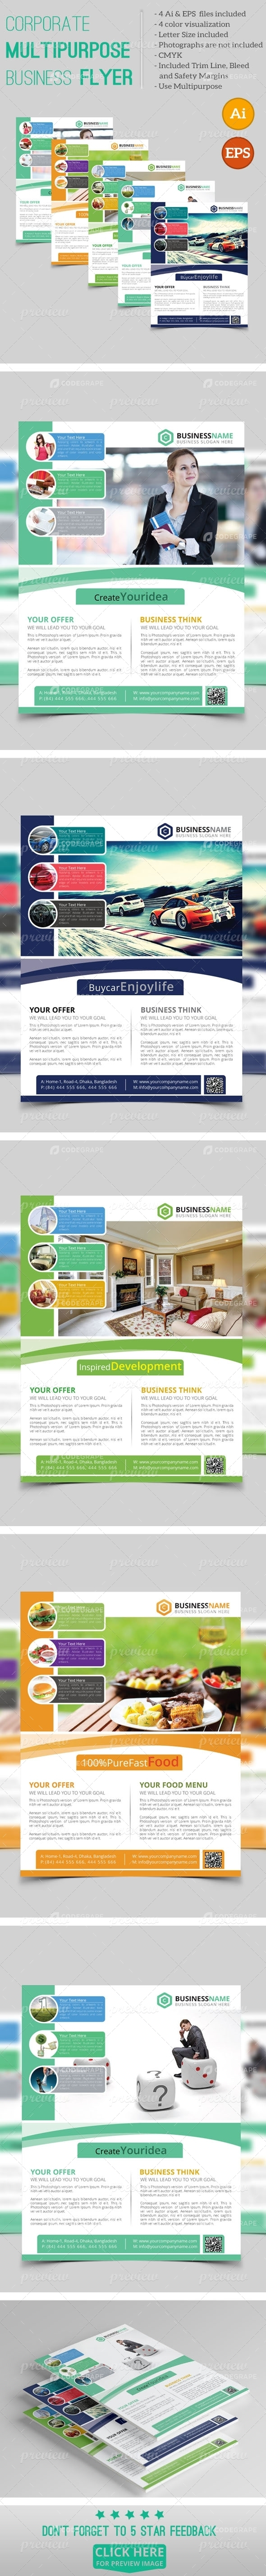 Corporate Multipurpose Business Flyer